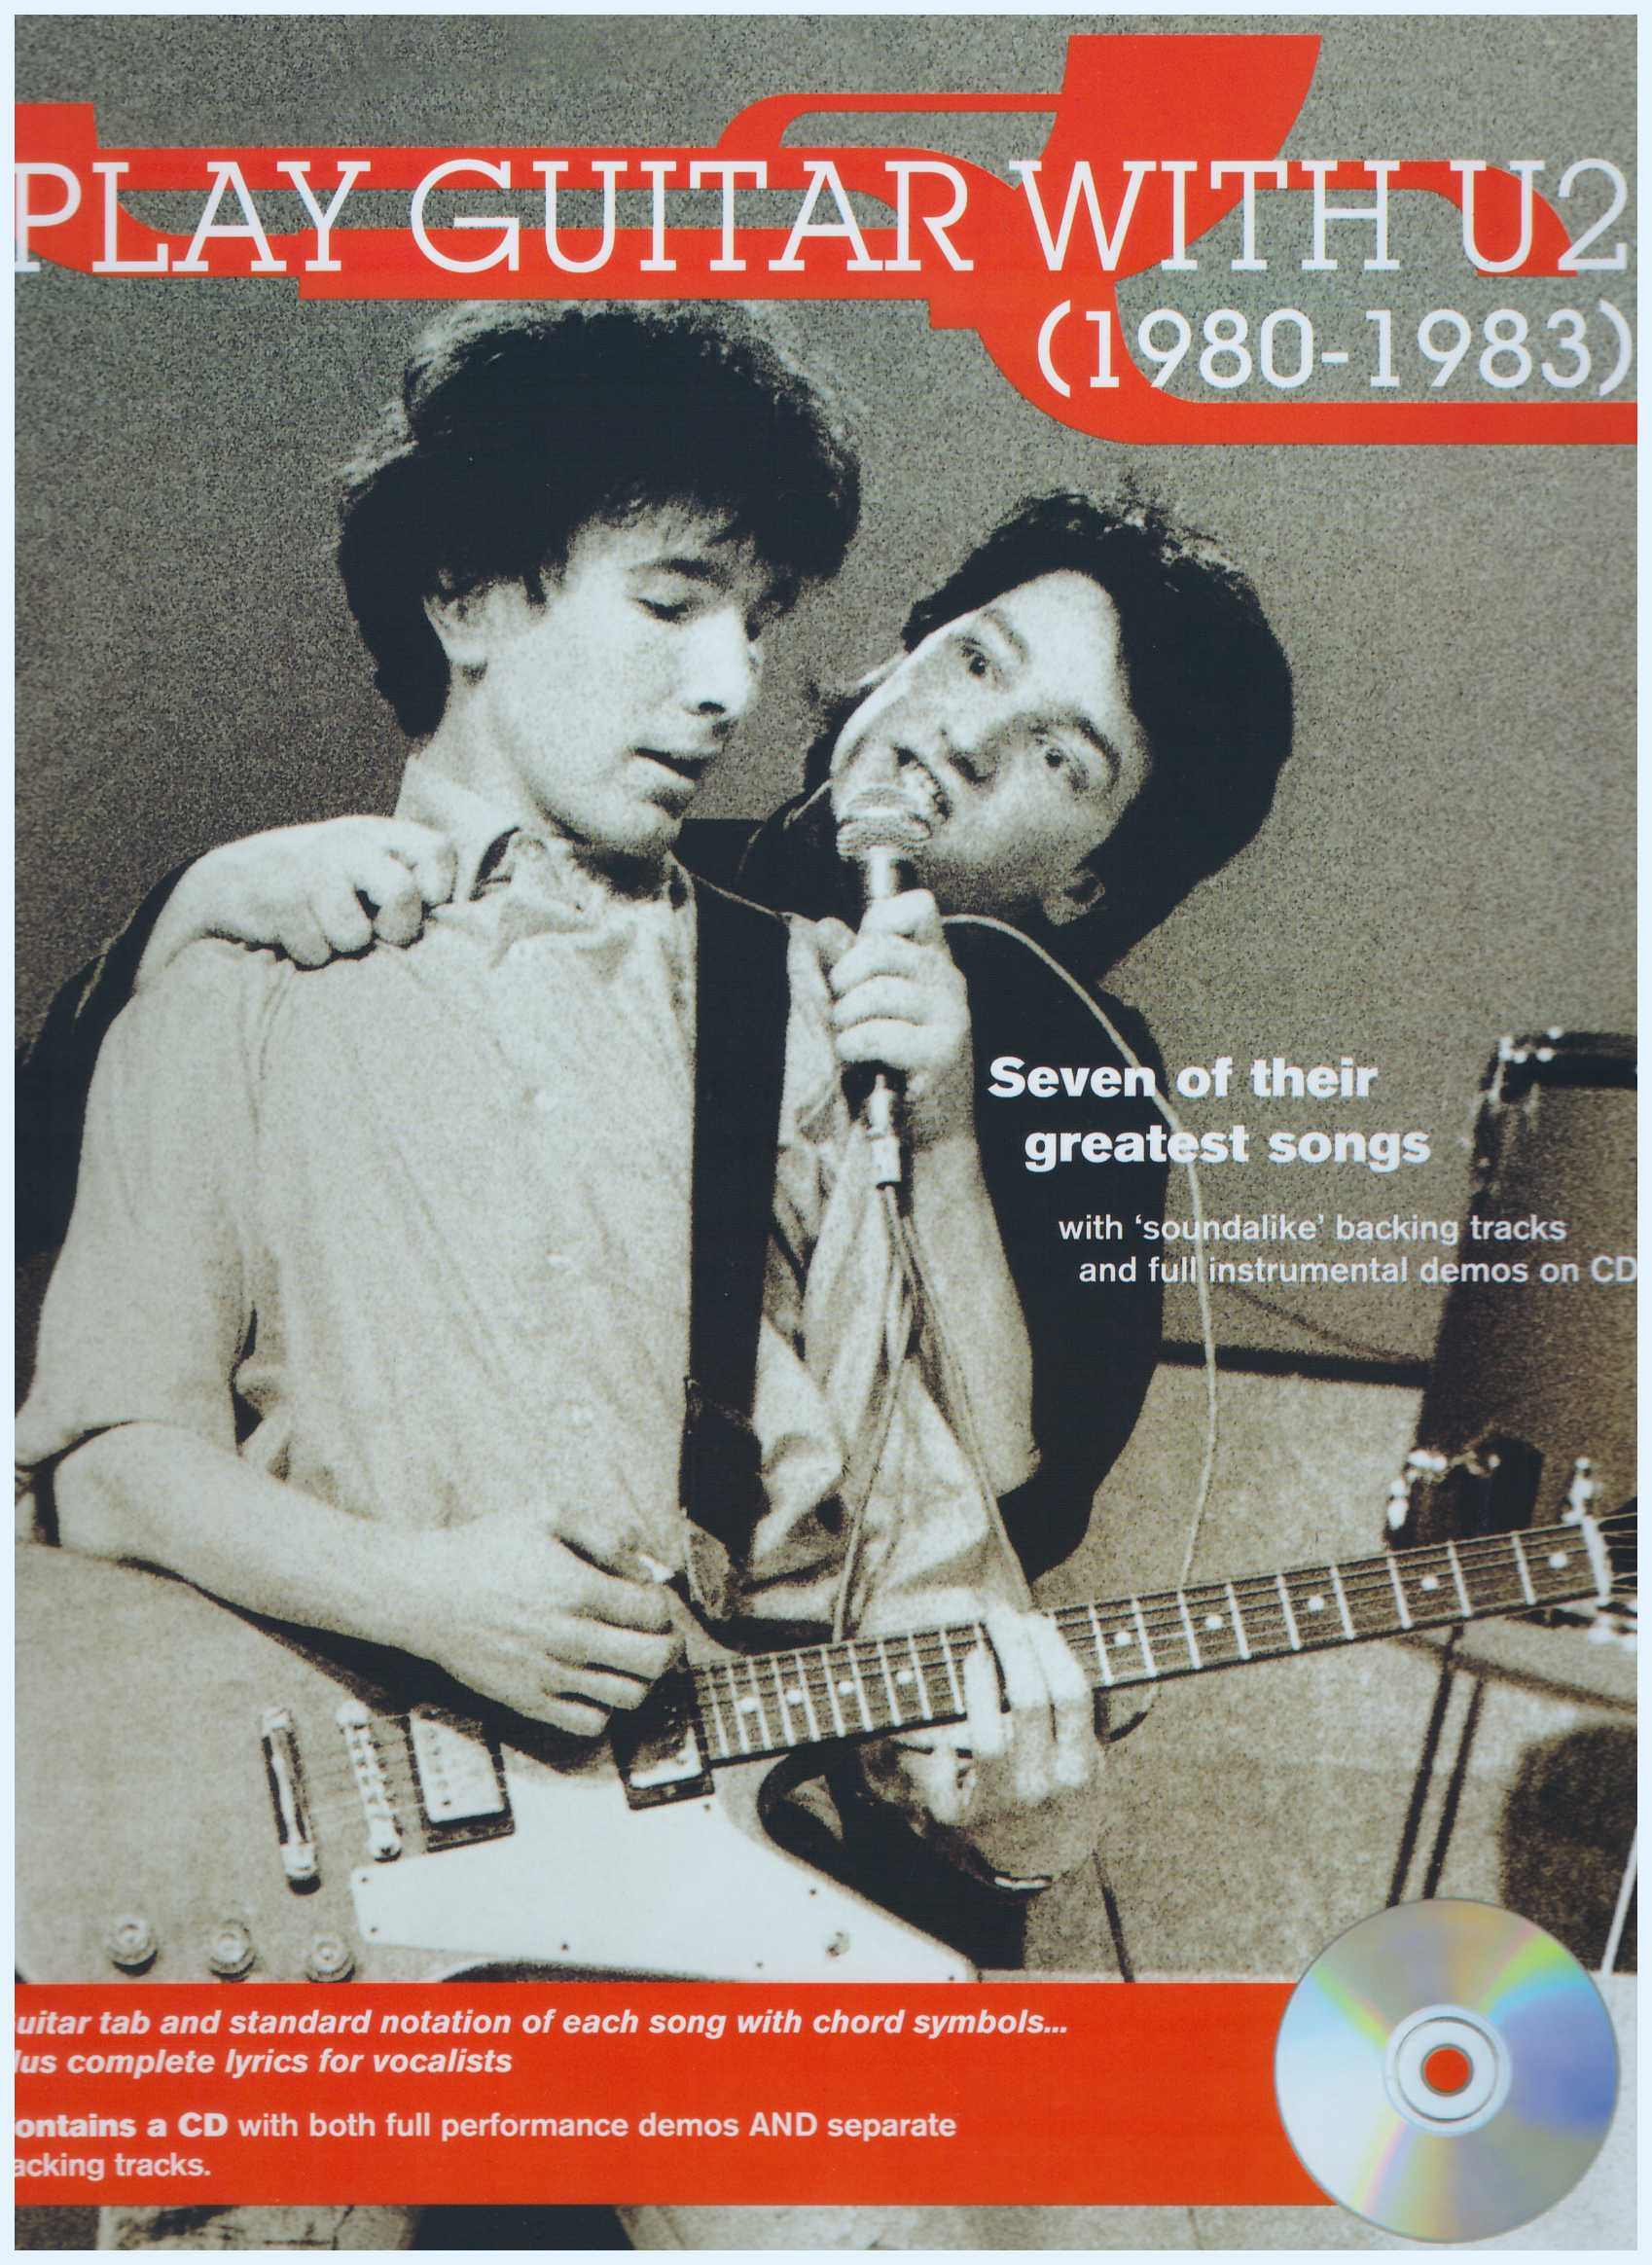 Play Guitar With U2 (1980 - 1983)  / Vocal Book / Voice Book / Guitar Book / Tab Book / Guitar Tab Book